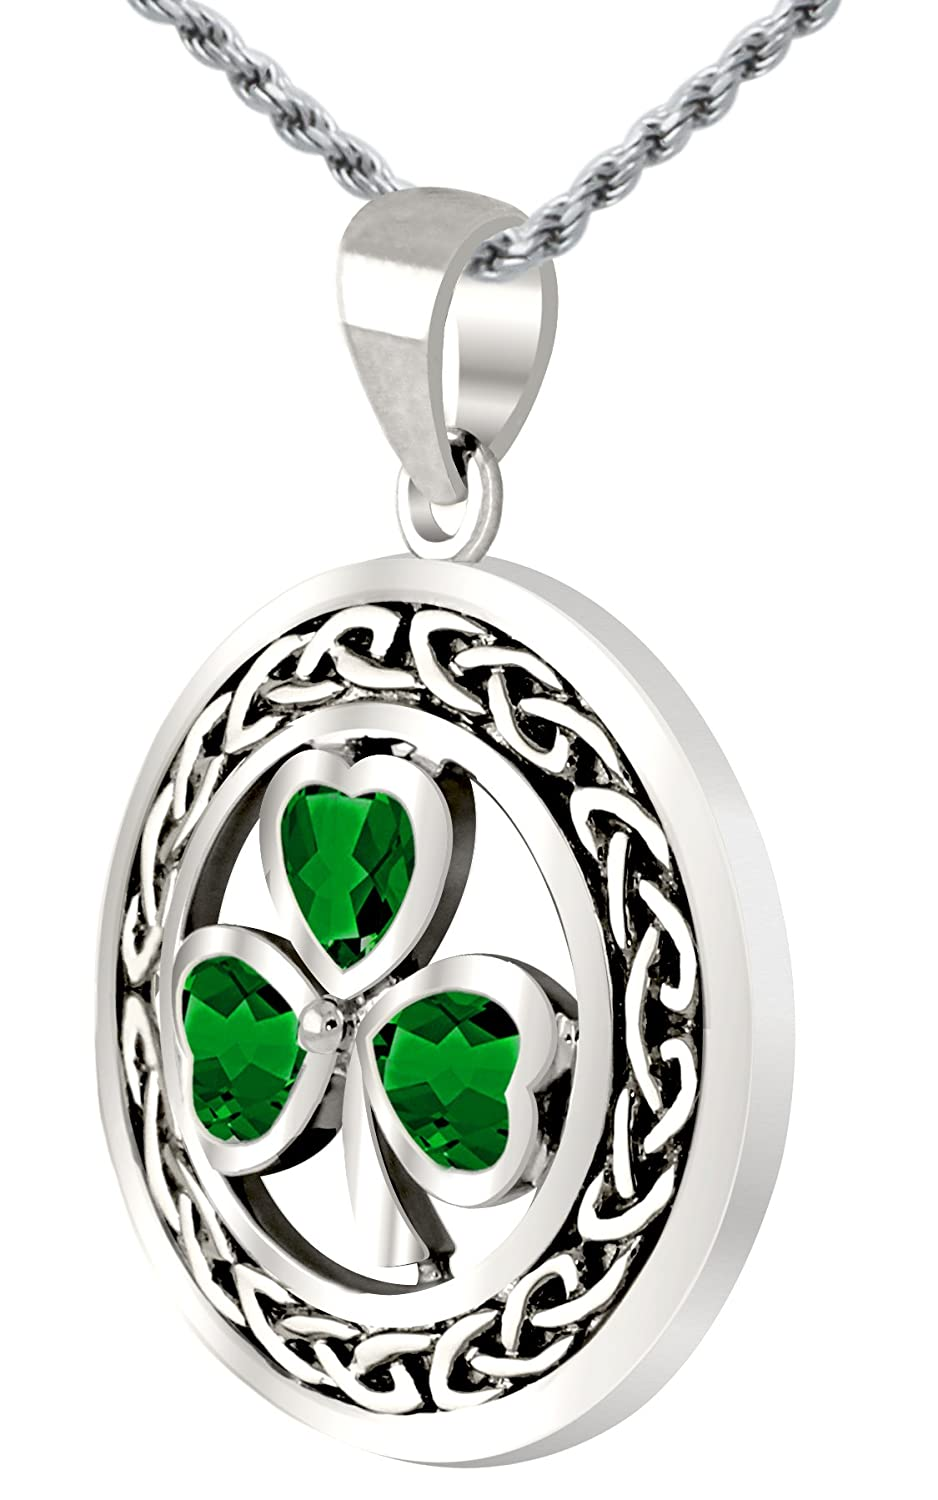 0.925 Sterling Silver Simulated Emerald Irish Shamrock Clover Pendant Necklace